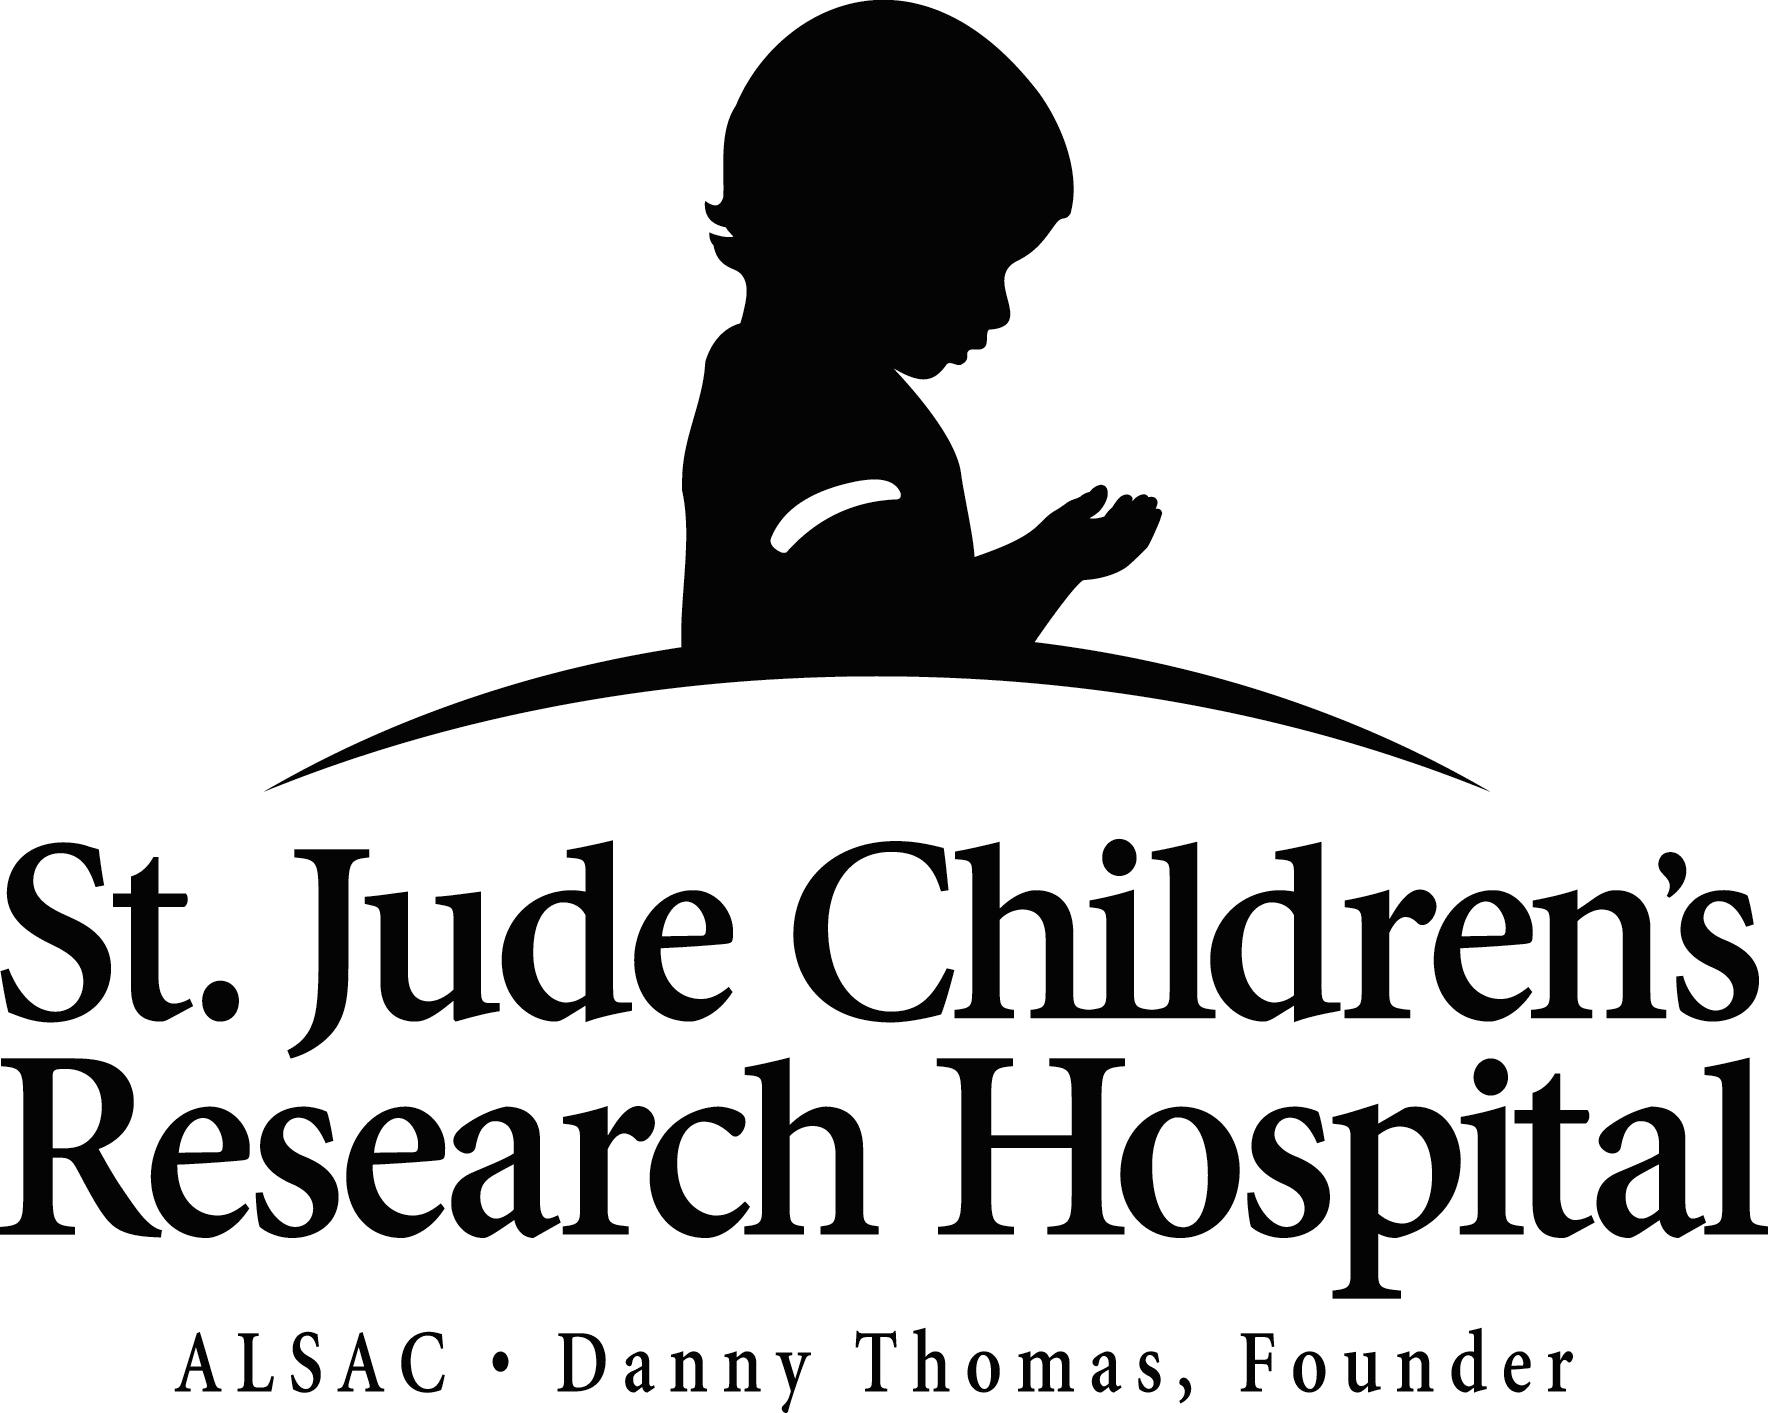 st jude childrens research hospital Product features lapel pin die cut in the shape of the stjude praying child graphic.